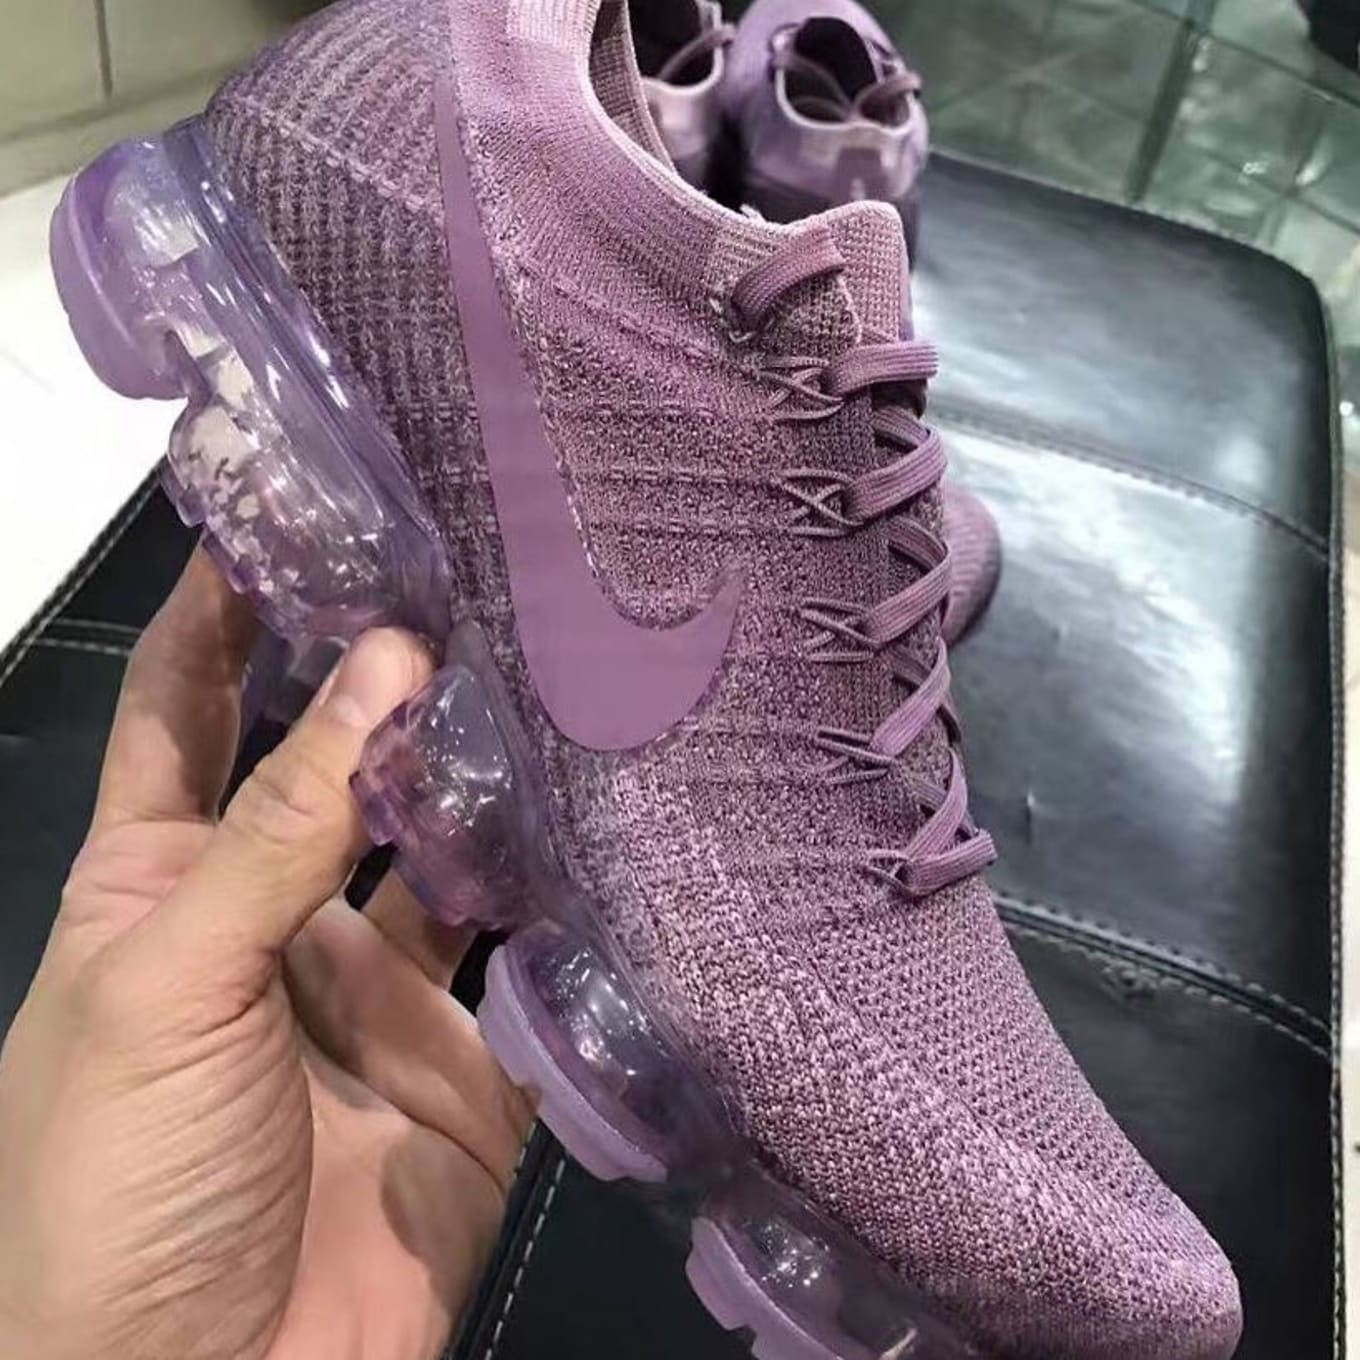 cd86257900c A New Hue for the Nike VaporMax. Purple covers the latest pair to surface.